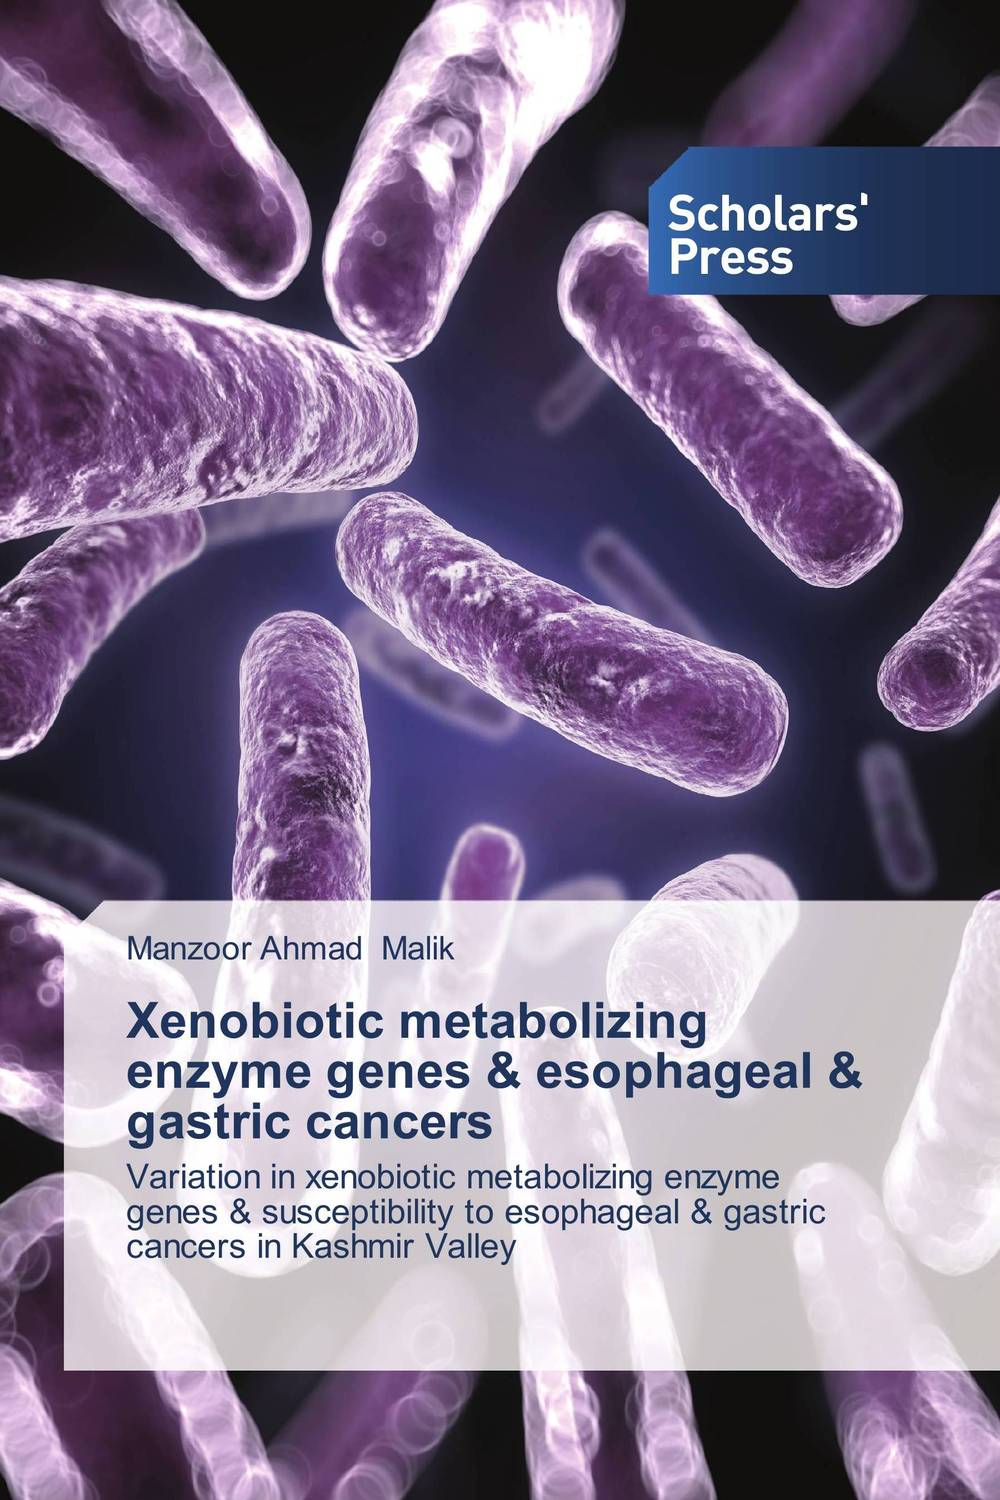 Xenobiotic metabolizing enzyme genes & esophageal & gastric cancers viruses cell transformation and cancer 5